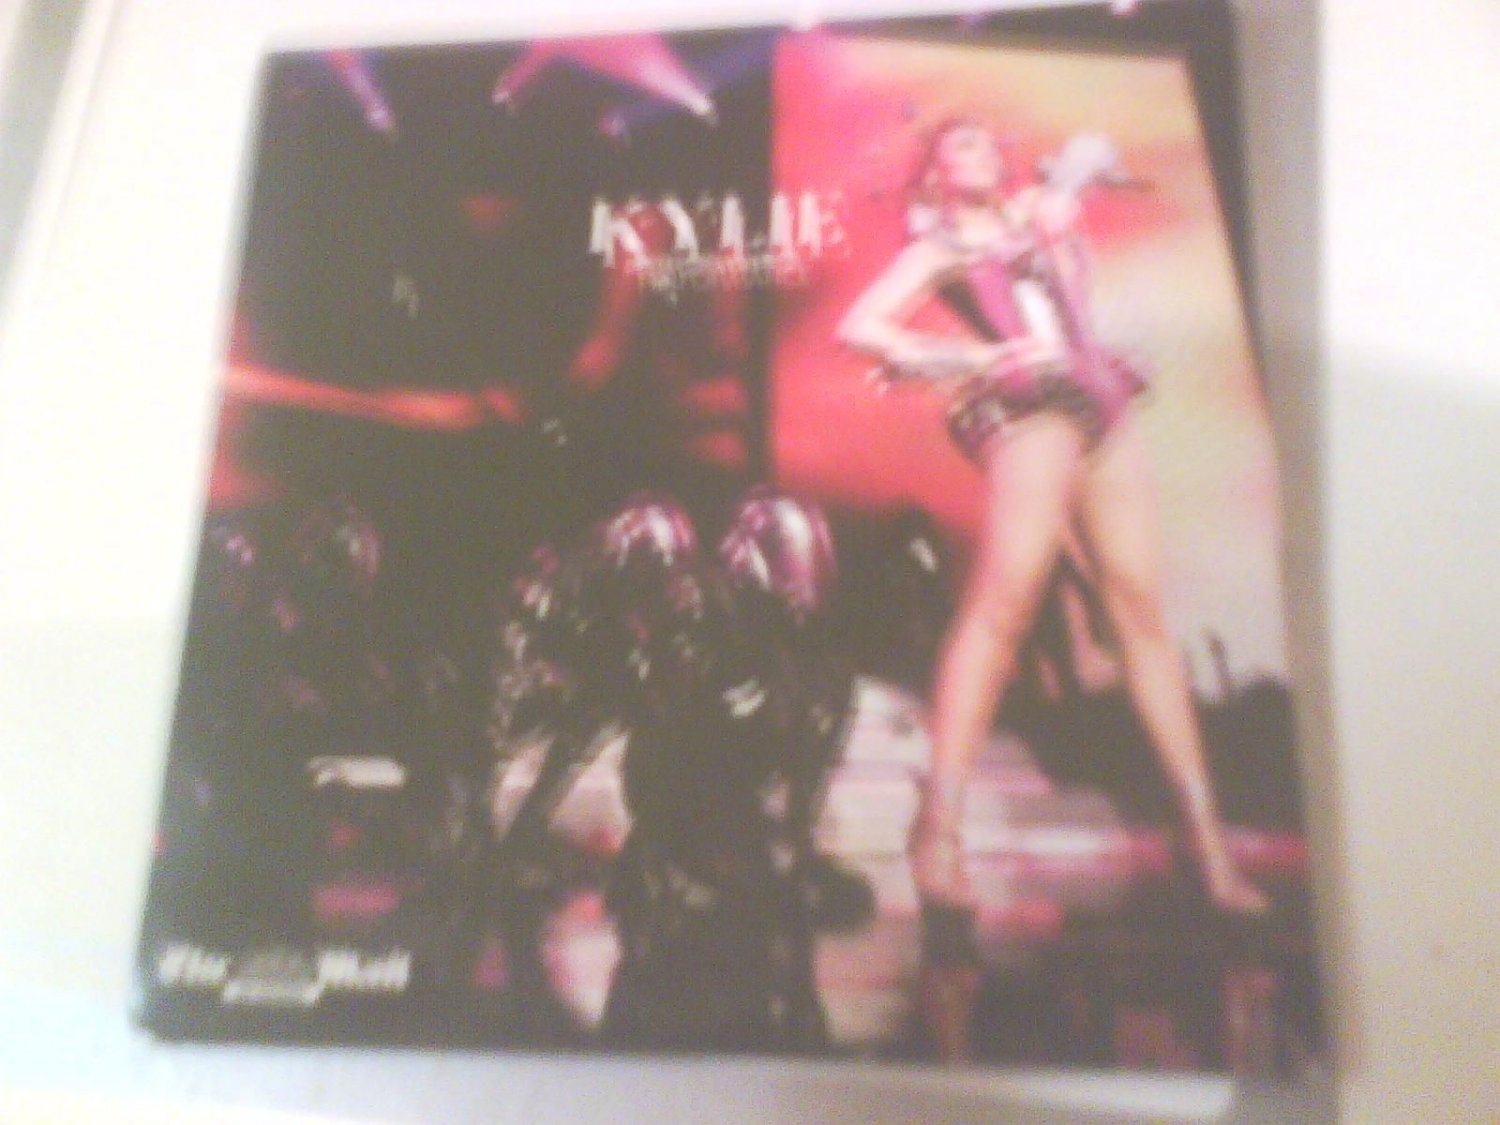 Kylie Performance CD Promo The Mail 13 Tracks New